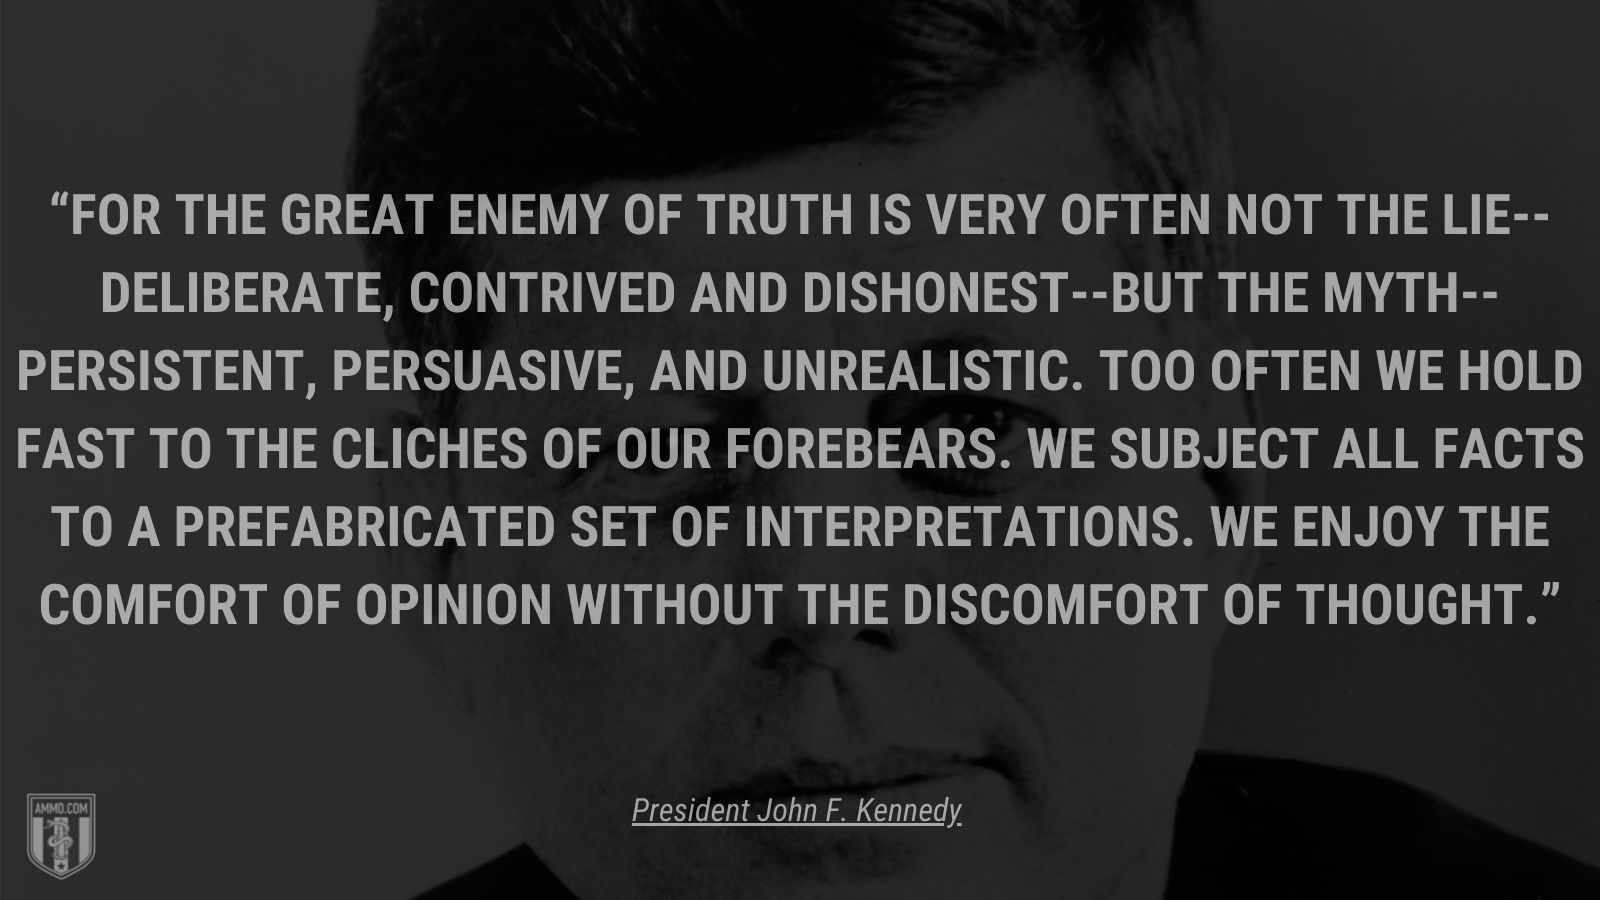 """""""For the great enemy of truth is very often not the lie--deliberate, contrived and dishonest--but the myth--persistent, persuasive, and unrealistic. Too often we hold fast to the cliches of our forebears. We subject all facts to a prefabricated set of interpretations. We enjoy the comfort of opinion without the discomfort of thought."""" - President John F. Kennedy"""